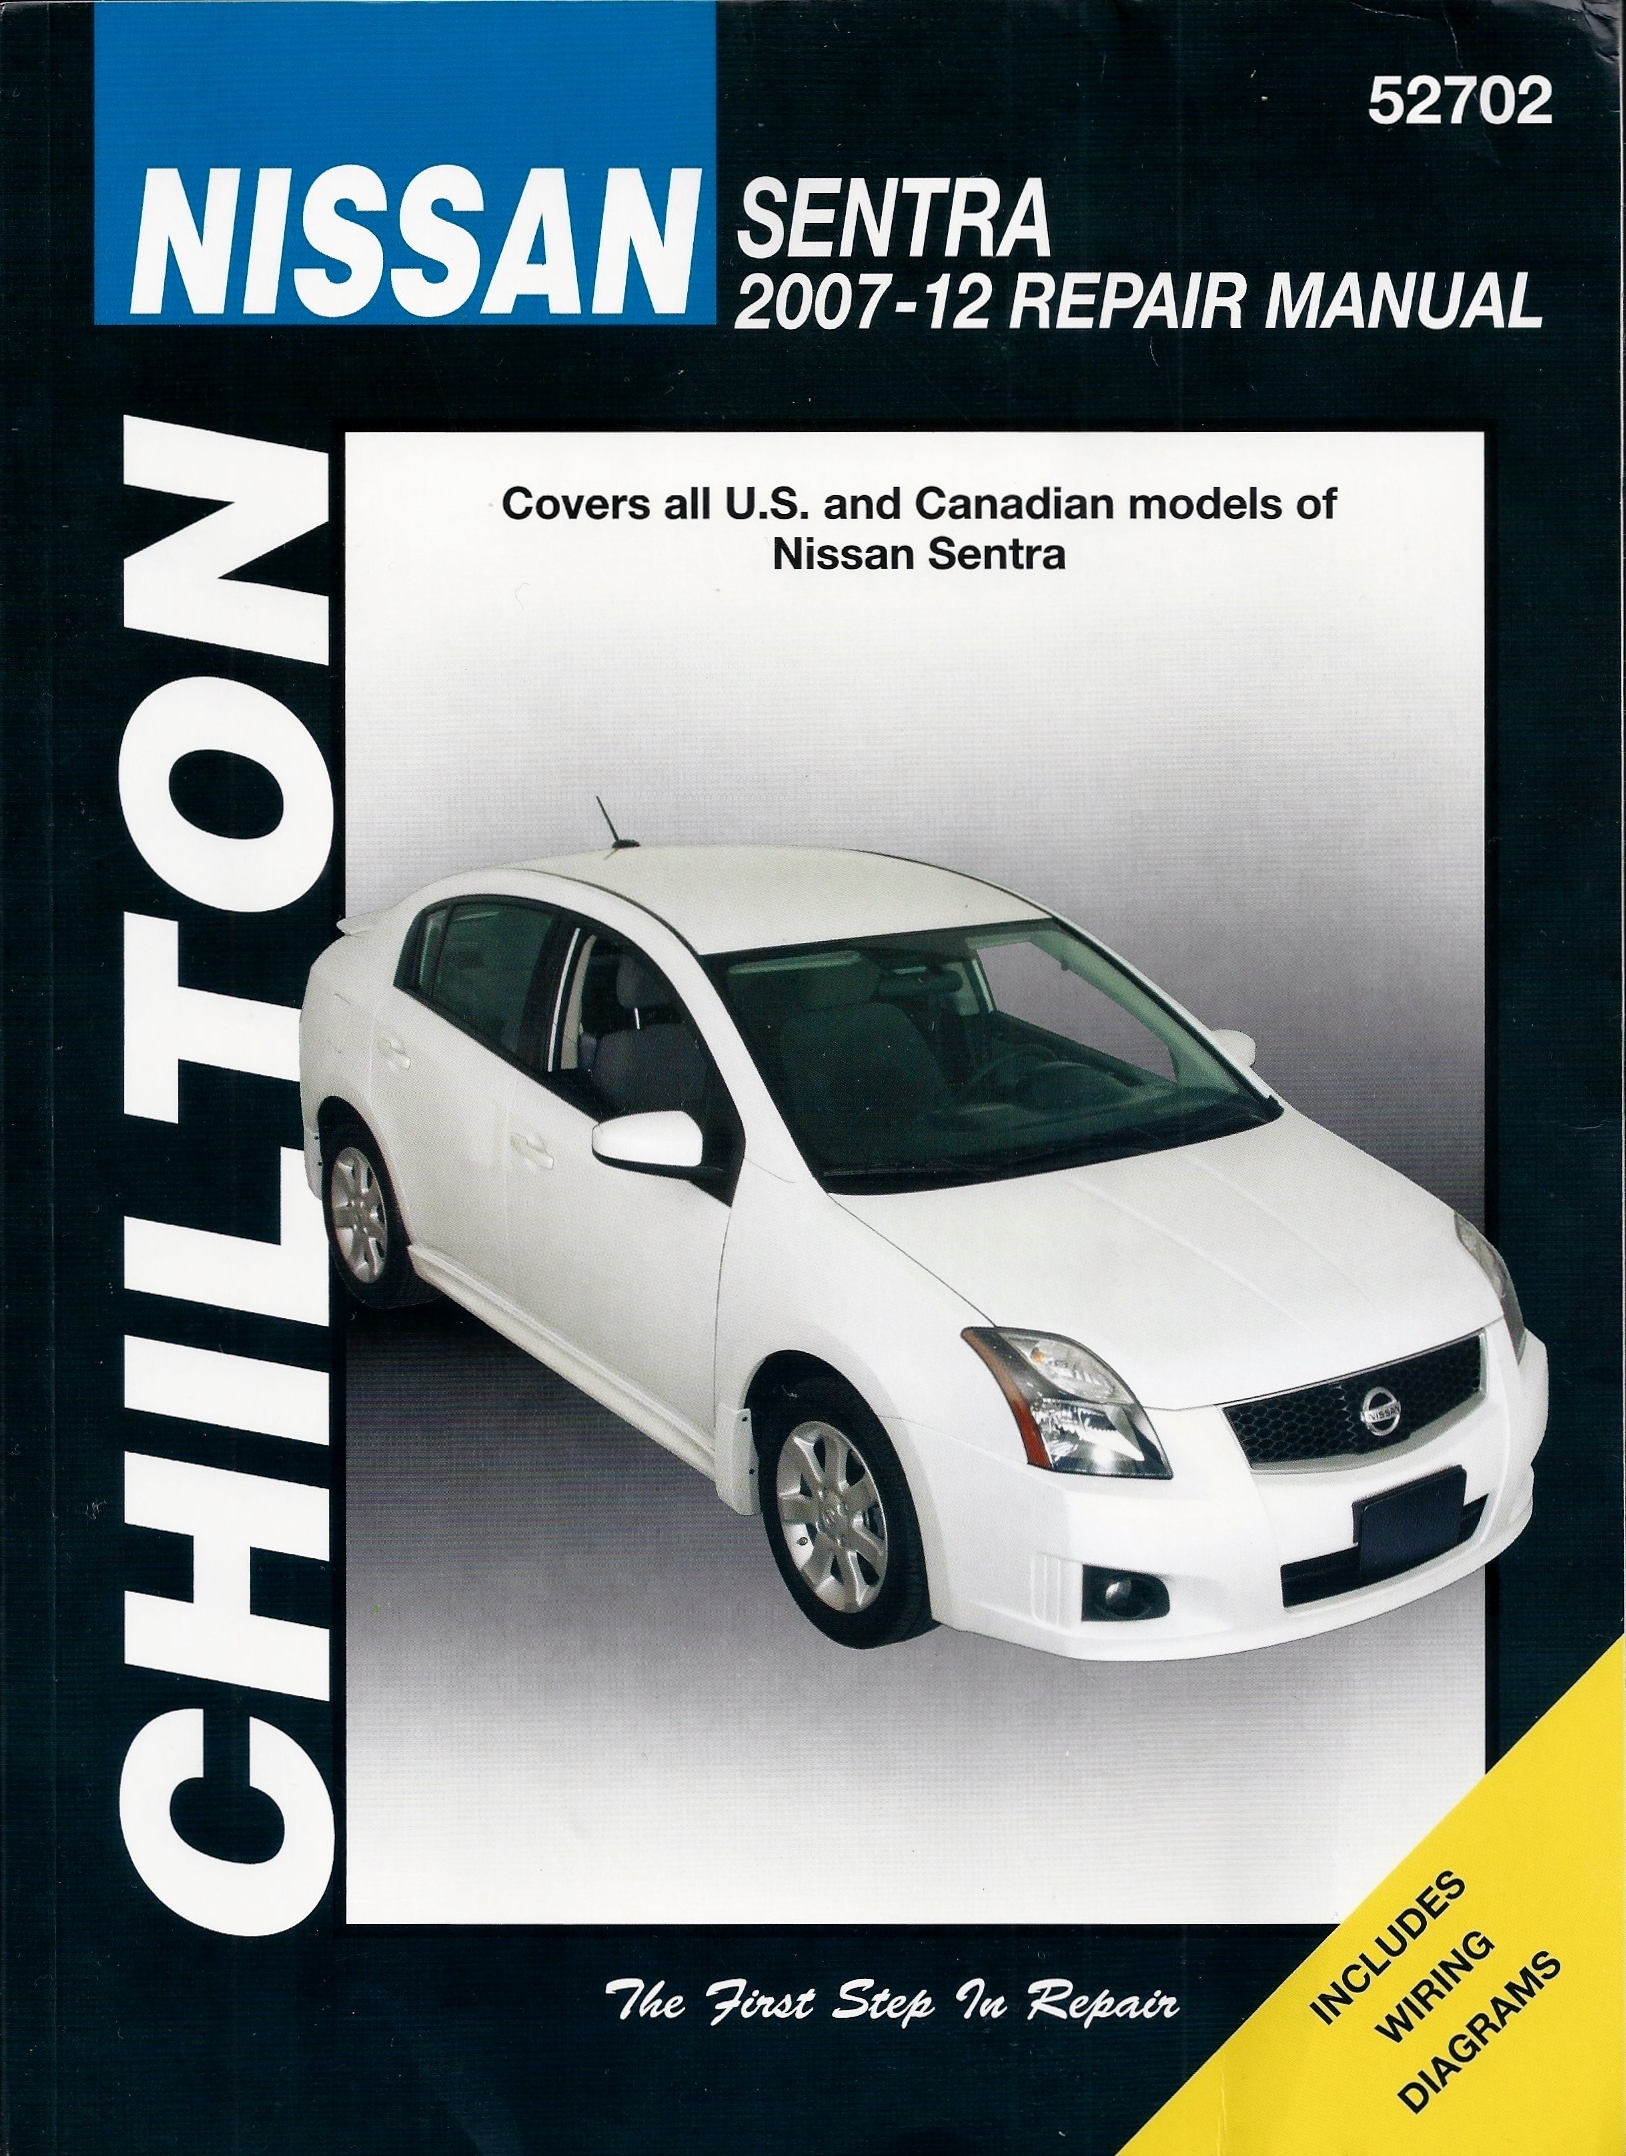 sentra service manualarray chilton u0027s 2007 12 nissan sentra repair manual by jeff killingsworth rh goodreads com